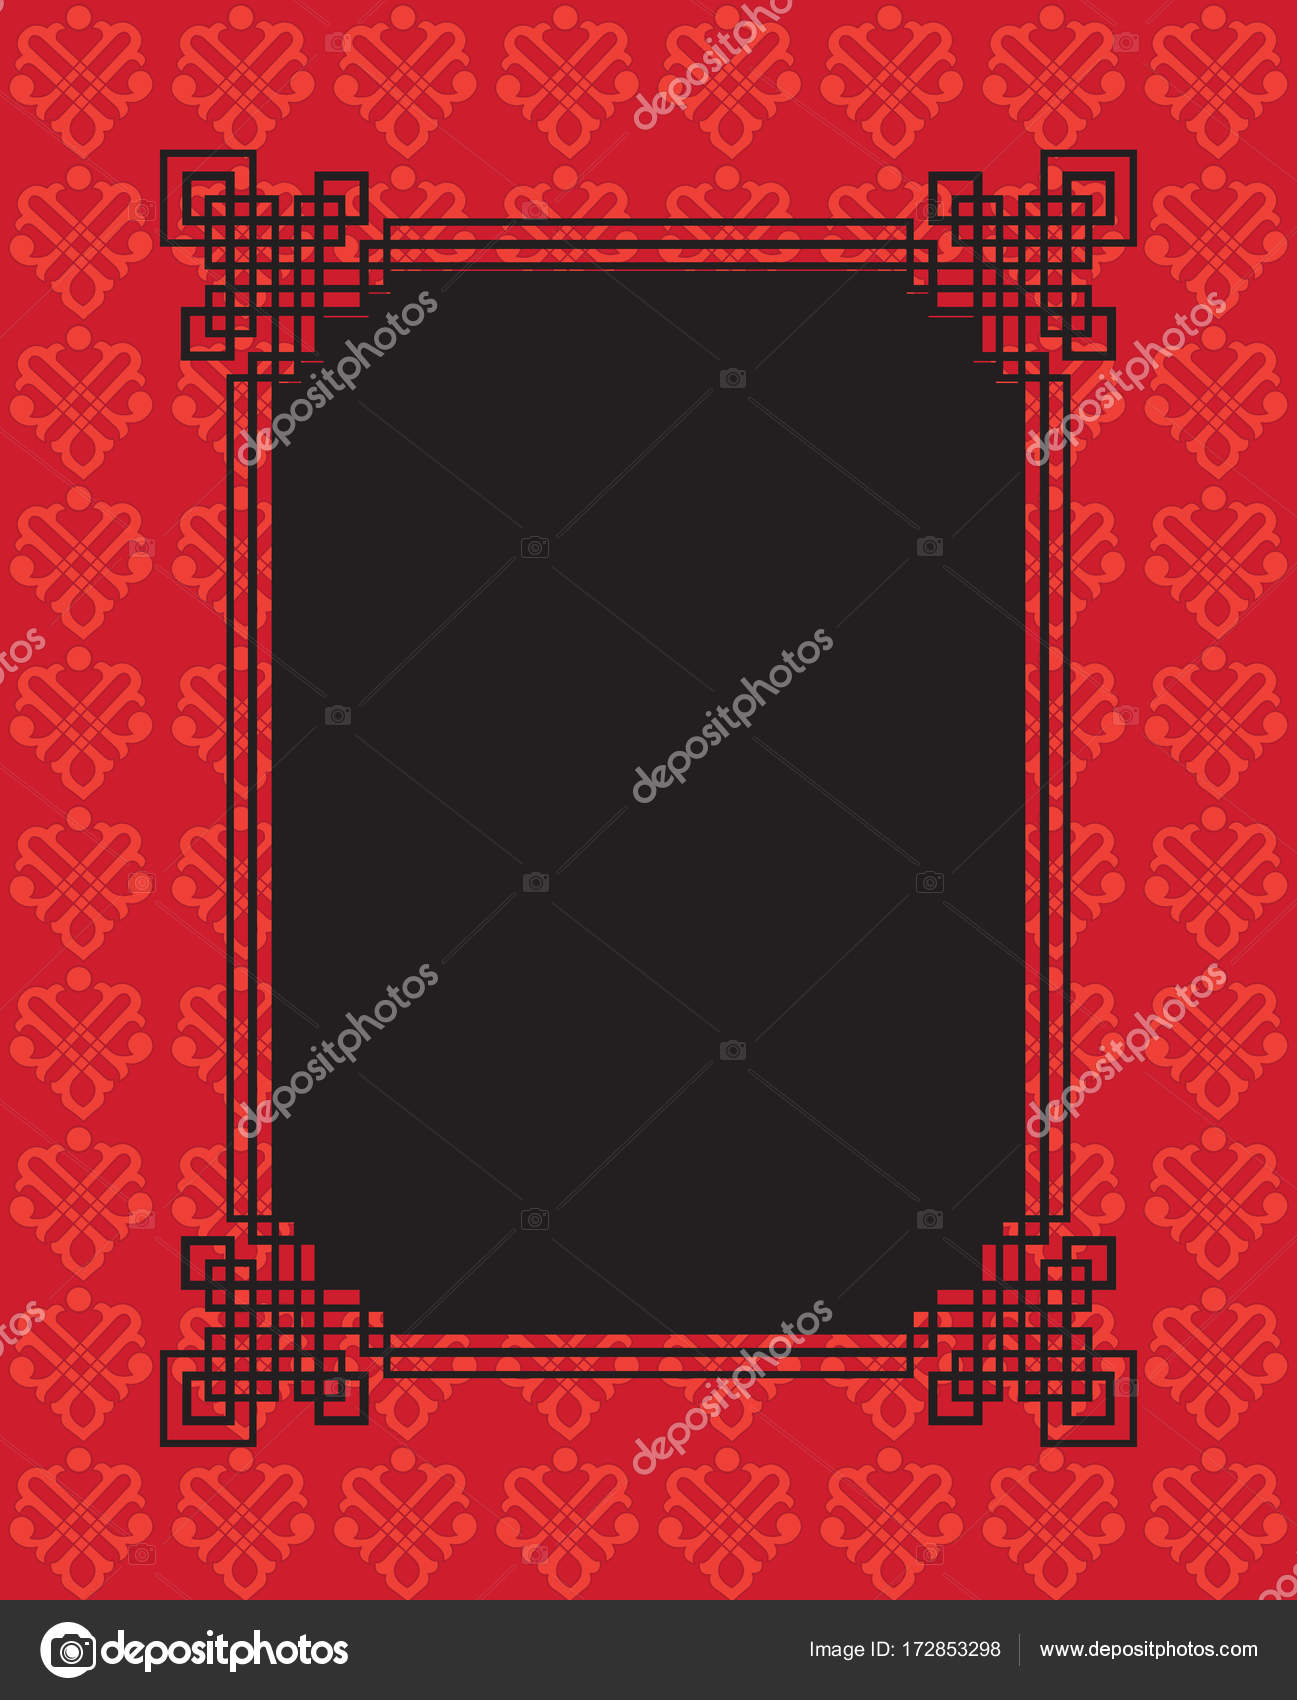 chinese happy new year greeting card decoration border traditional ornamental pattern black and red color background with floral geometric ornament